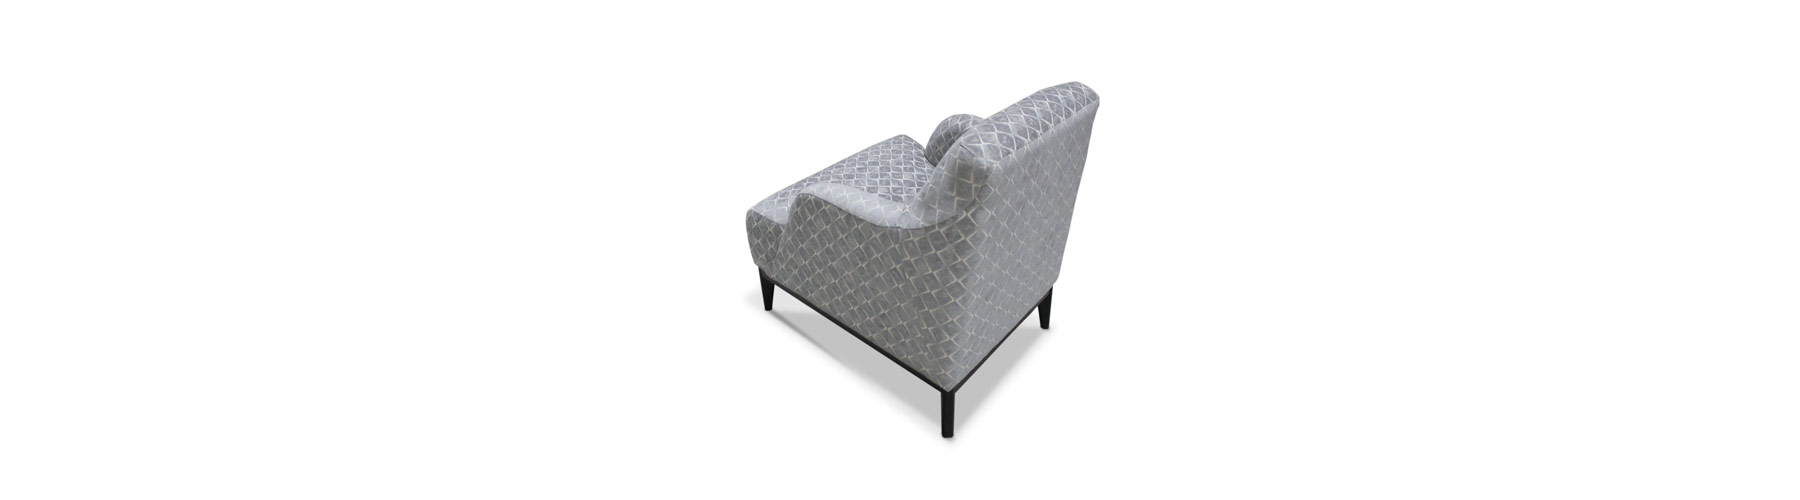 Lolly haut - Fauteuil William